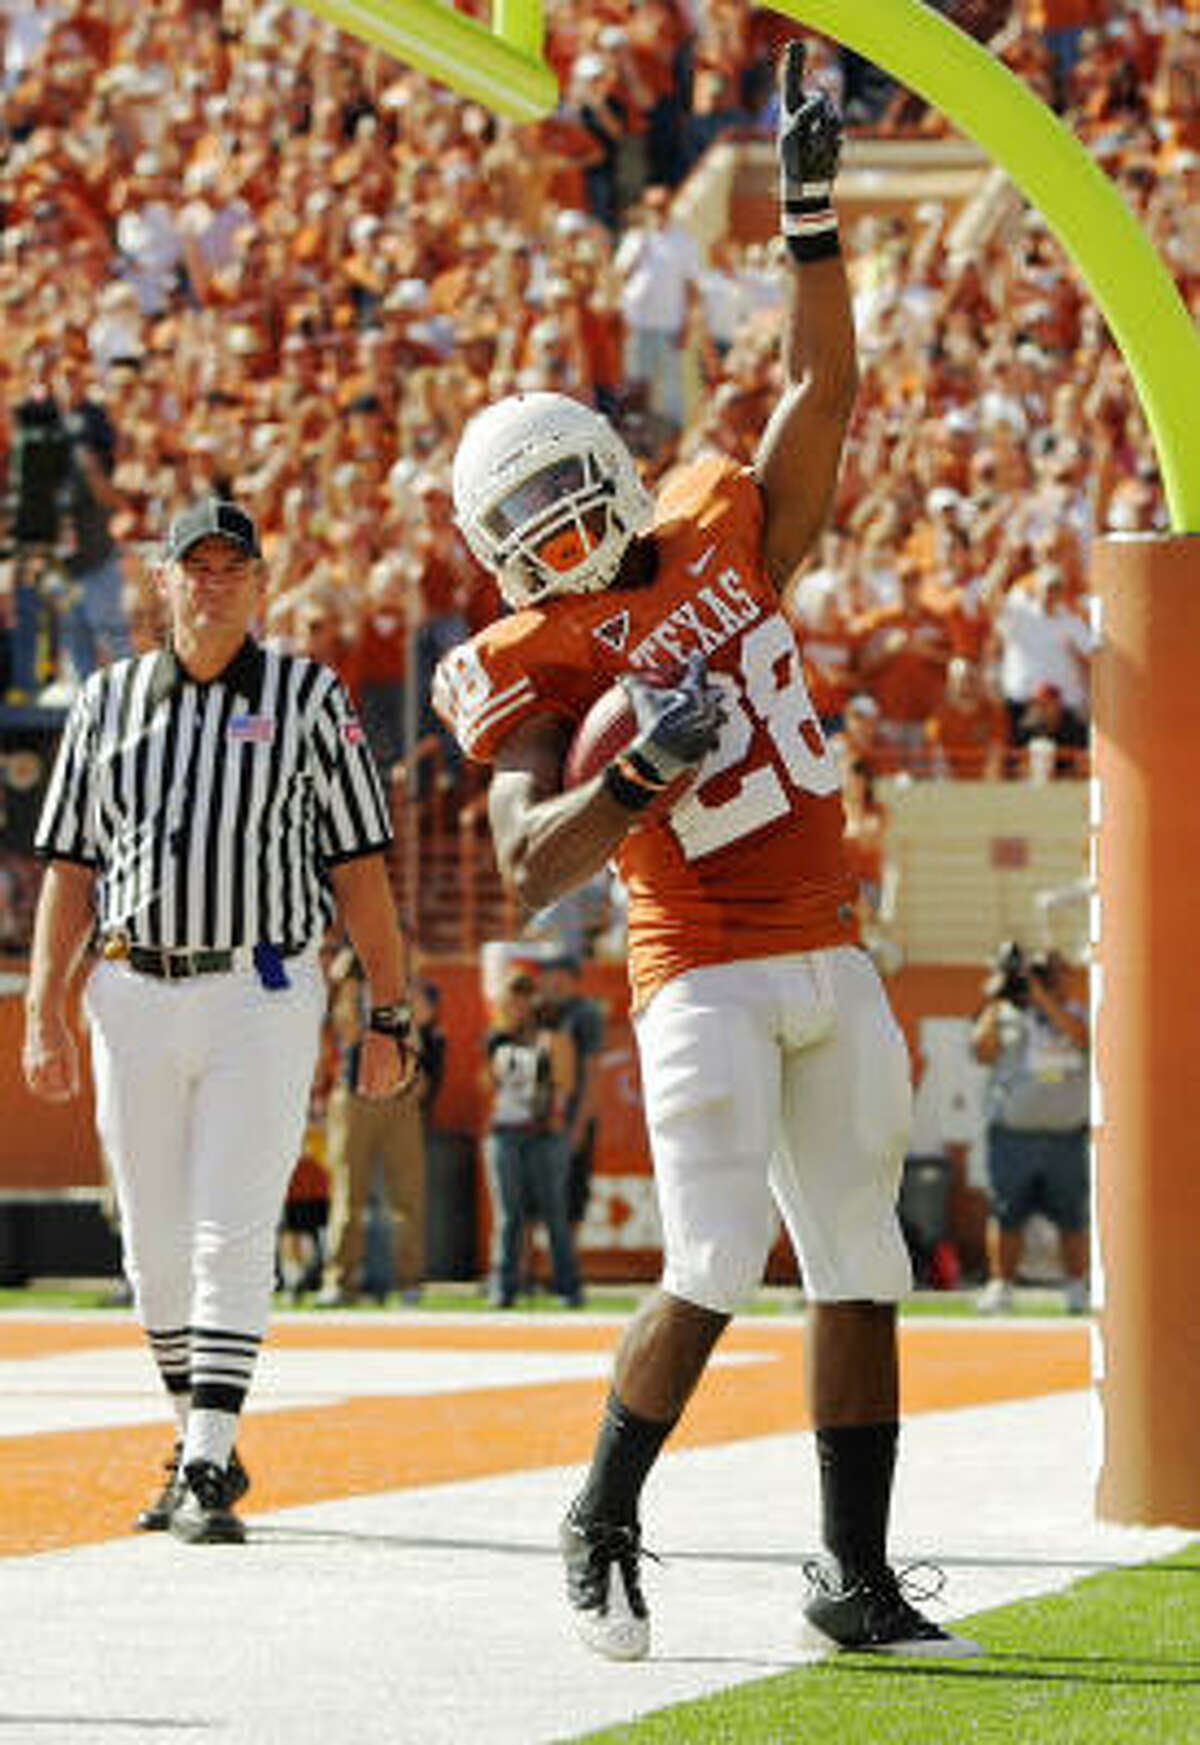 UT running back Fozzy Whittaker celebrates a touchdown during Texas' victory against Central Florida on Saturday in Austin.